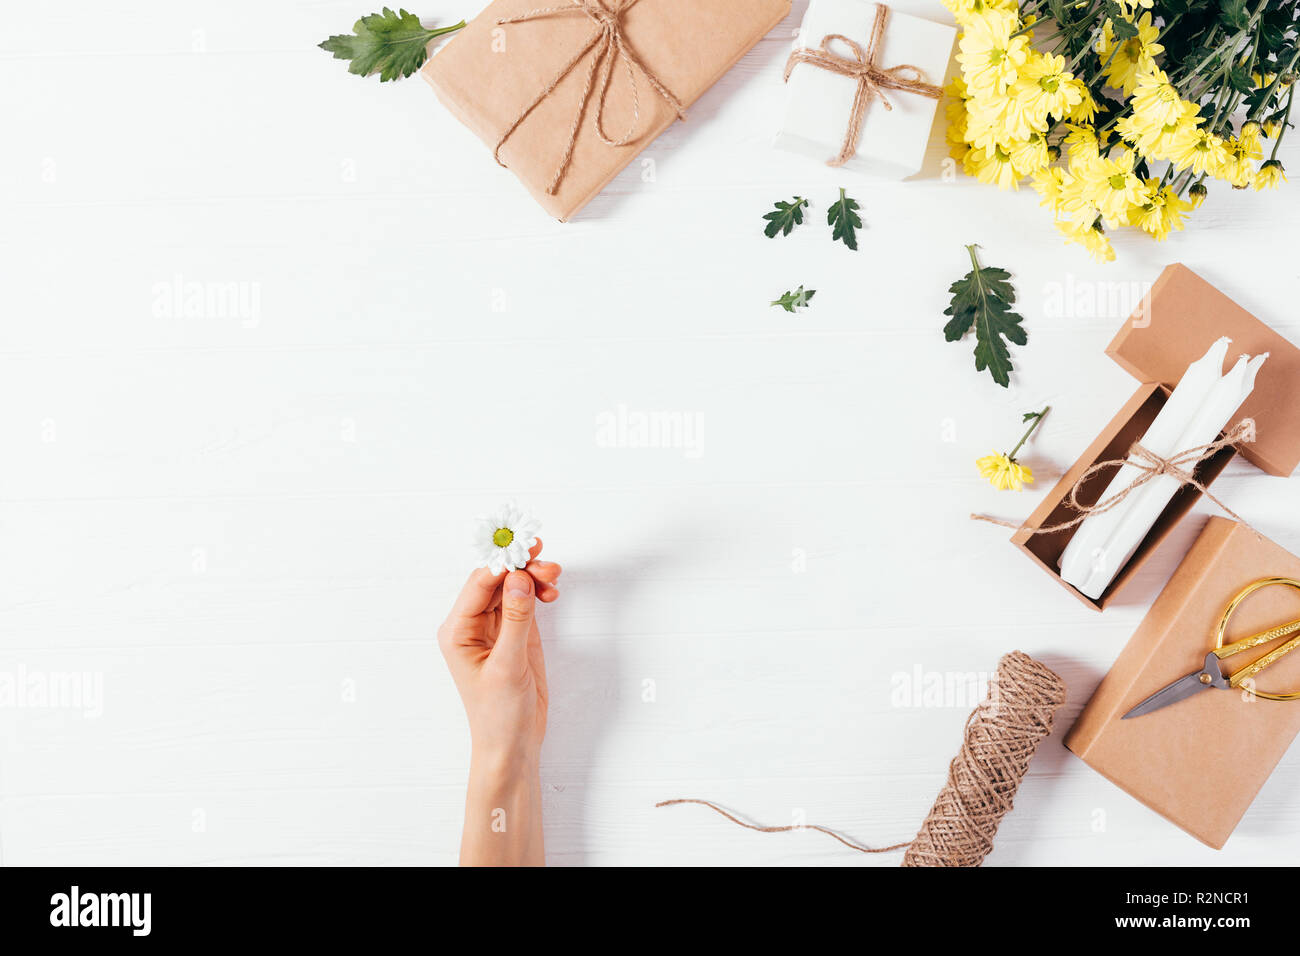 Woman S Hand Holding Small Daisy Among Festive Flat Lay Side Frame